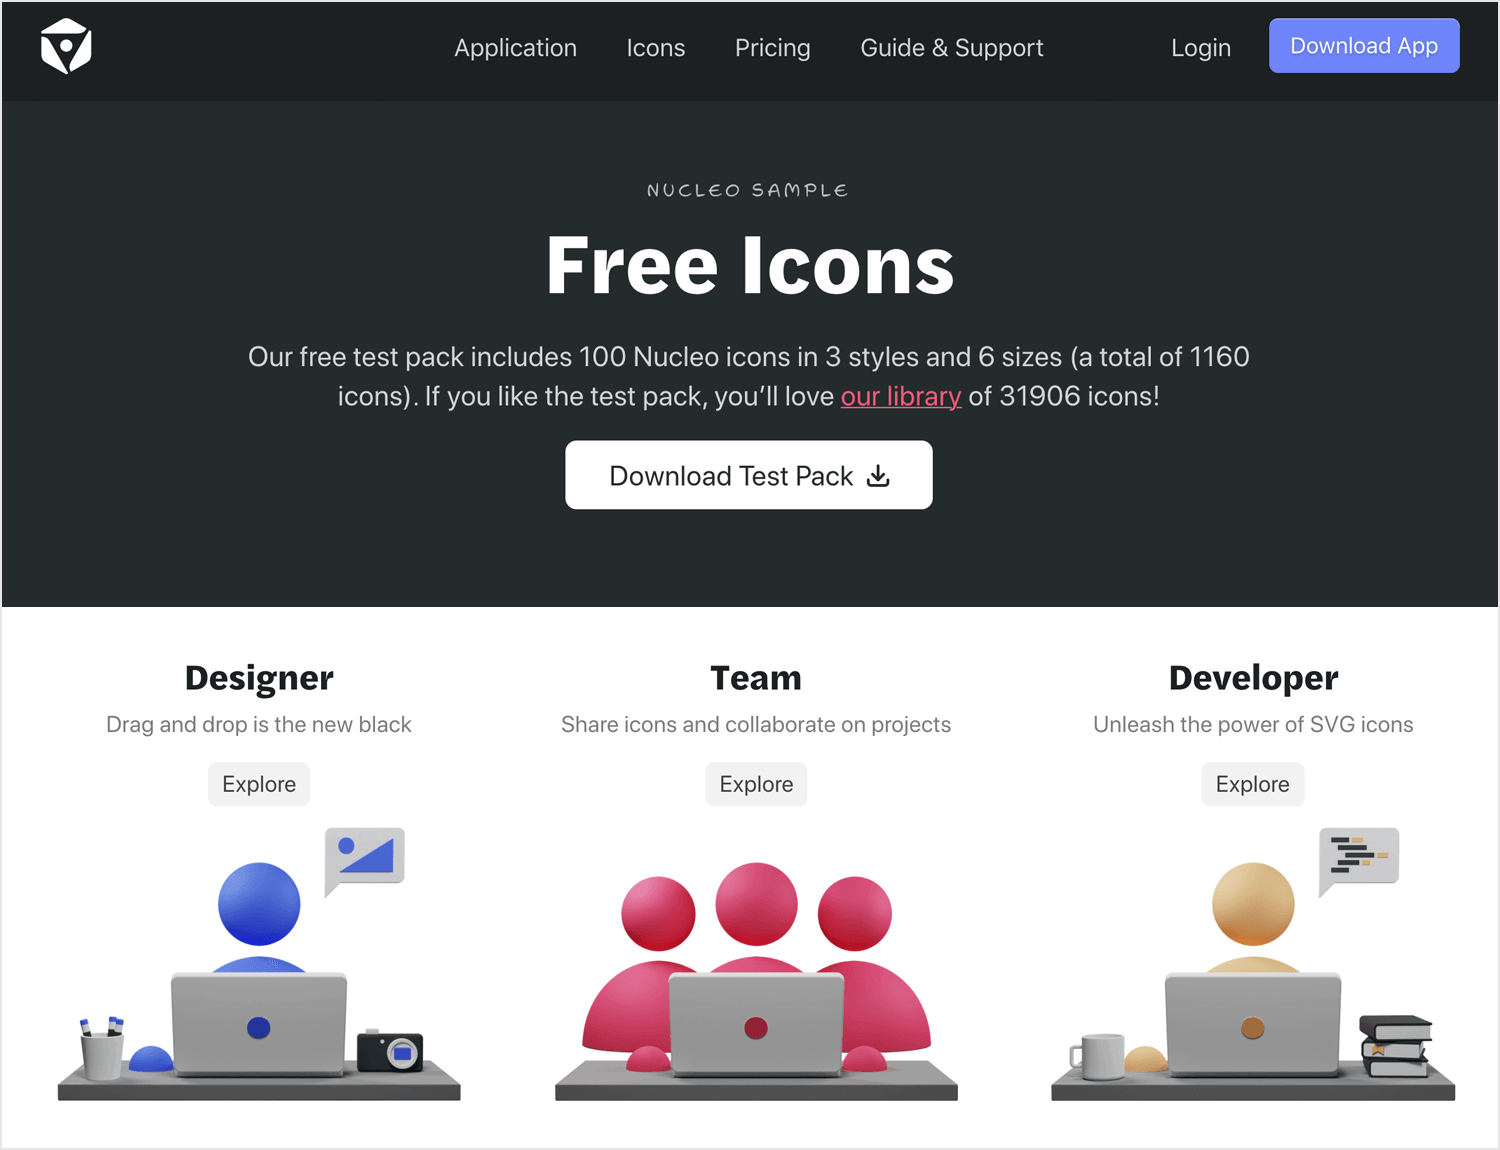 Free app icons to download - Nucleoapp